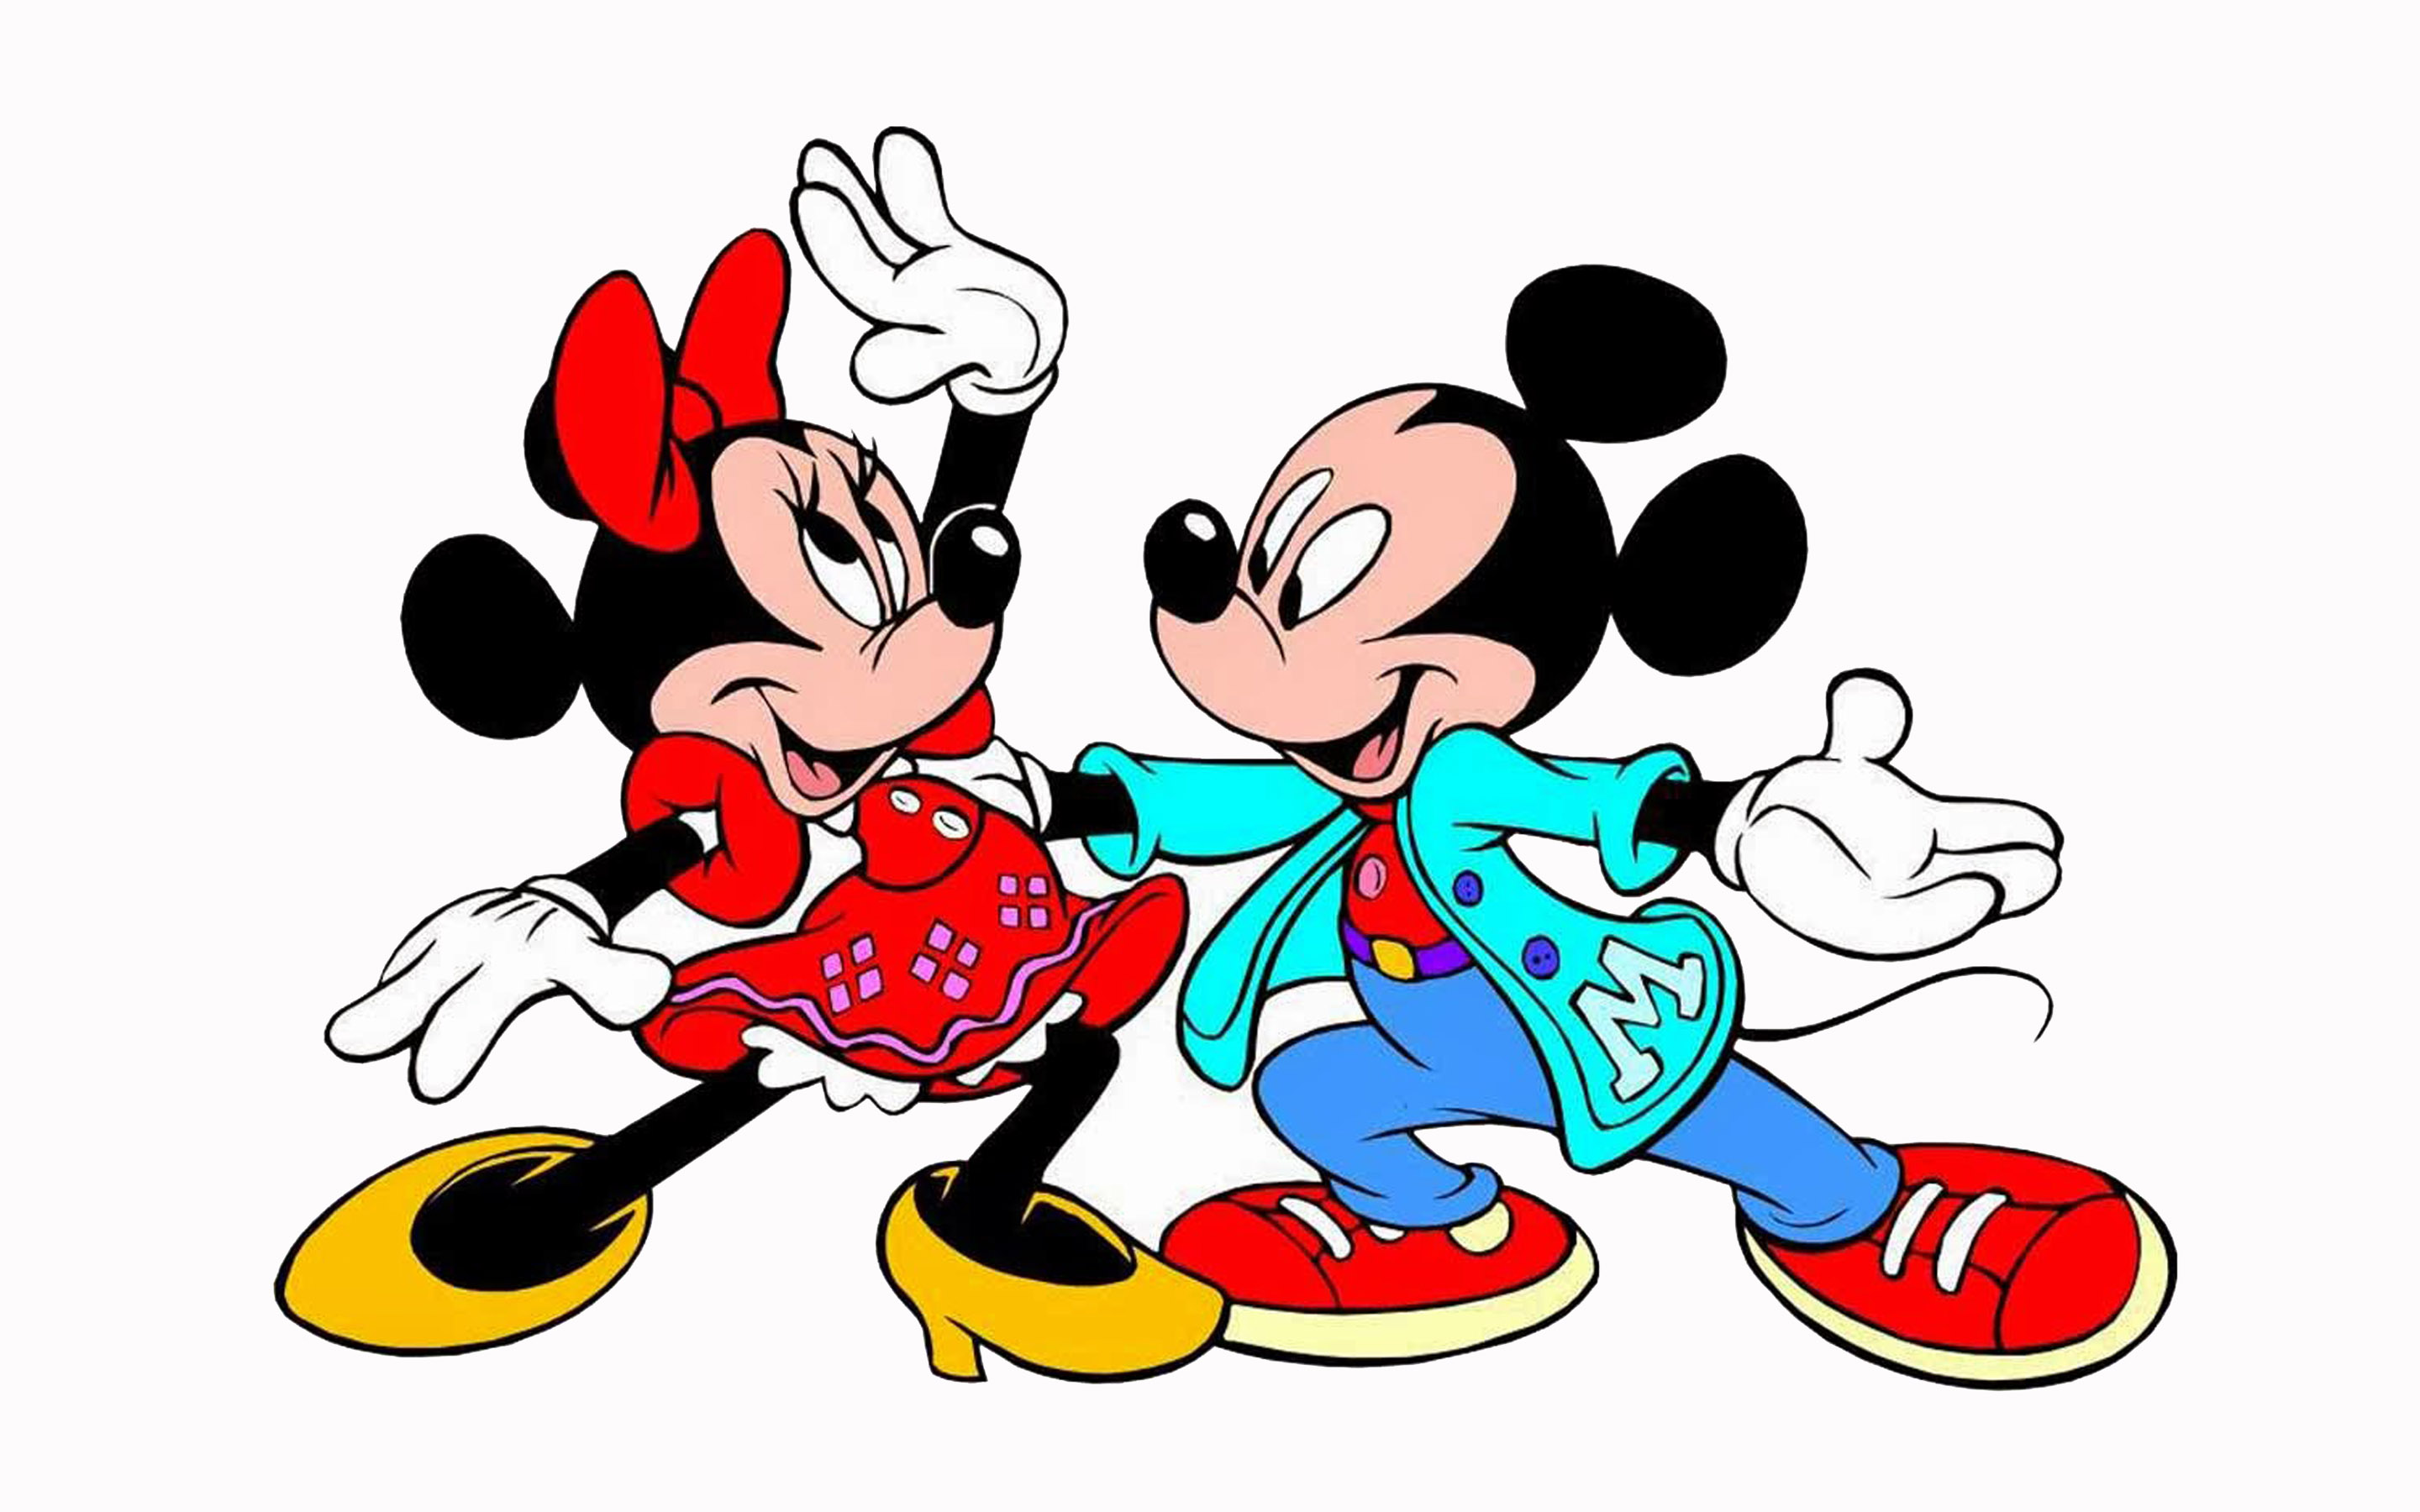 Mickey Minnie Mouse Dancing Cartoons Hd Wallpapers For Mobile Phones And Laptops  Wallpapers13com